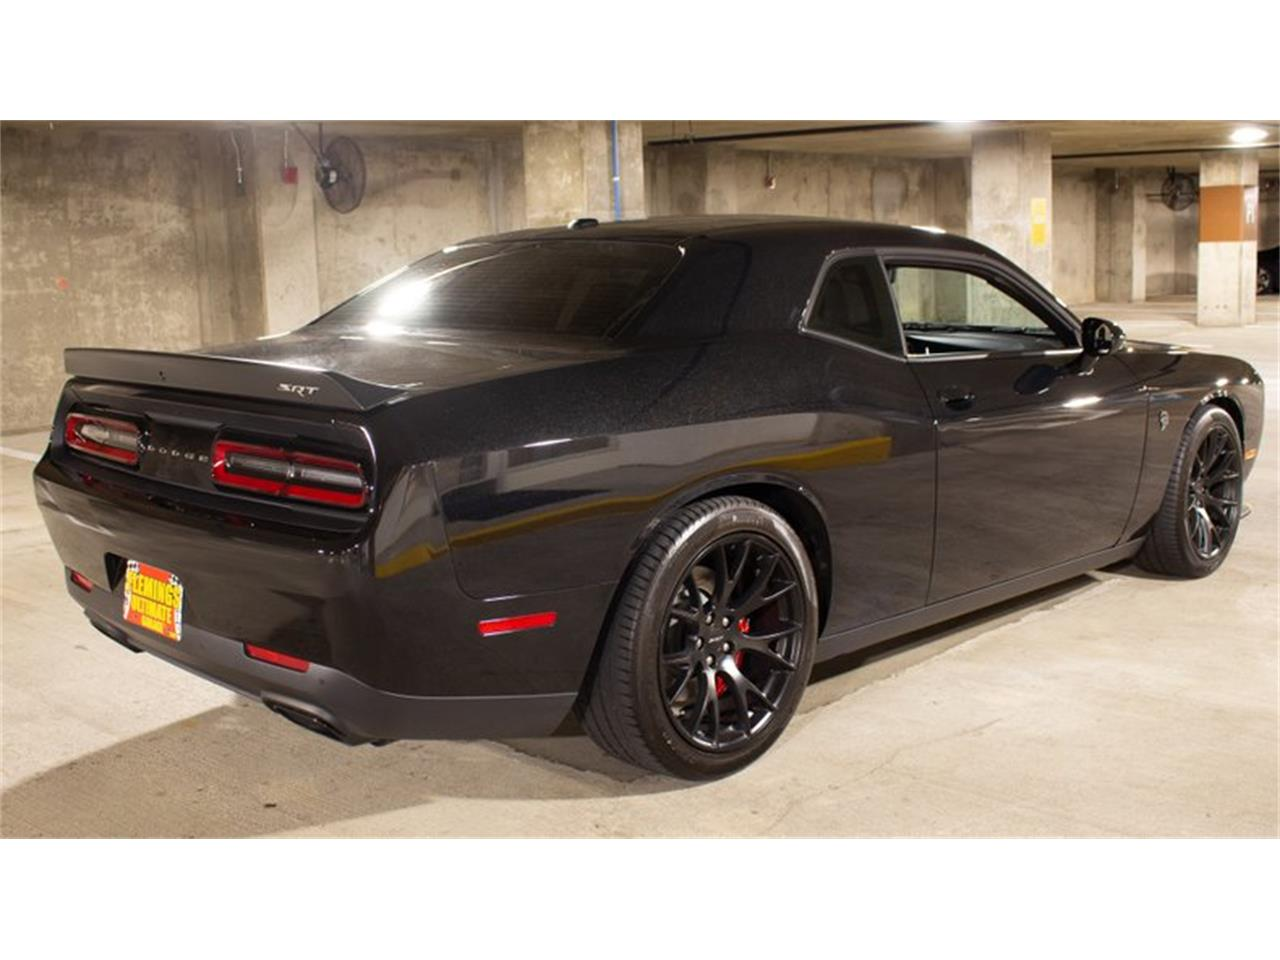 2015 Dodge Challenger for sale in Rockville, MD – photo 5